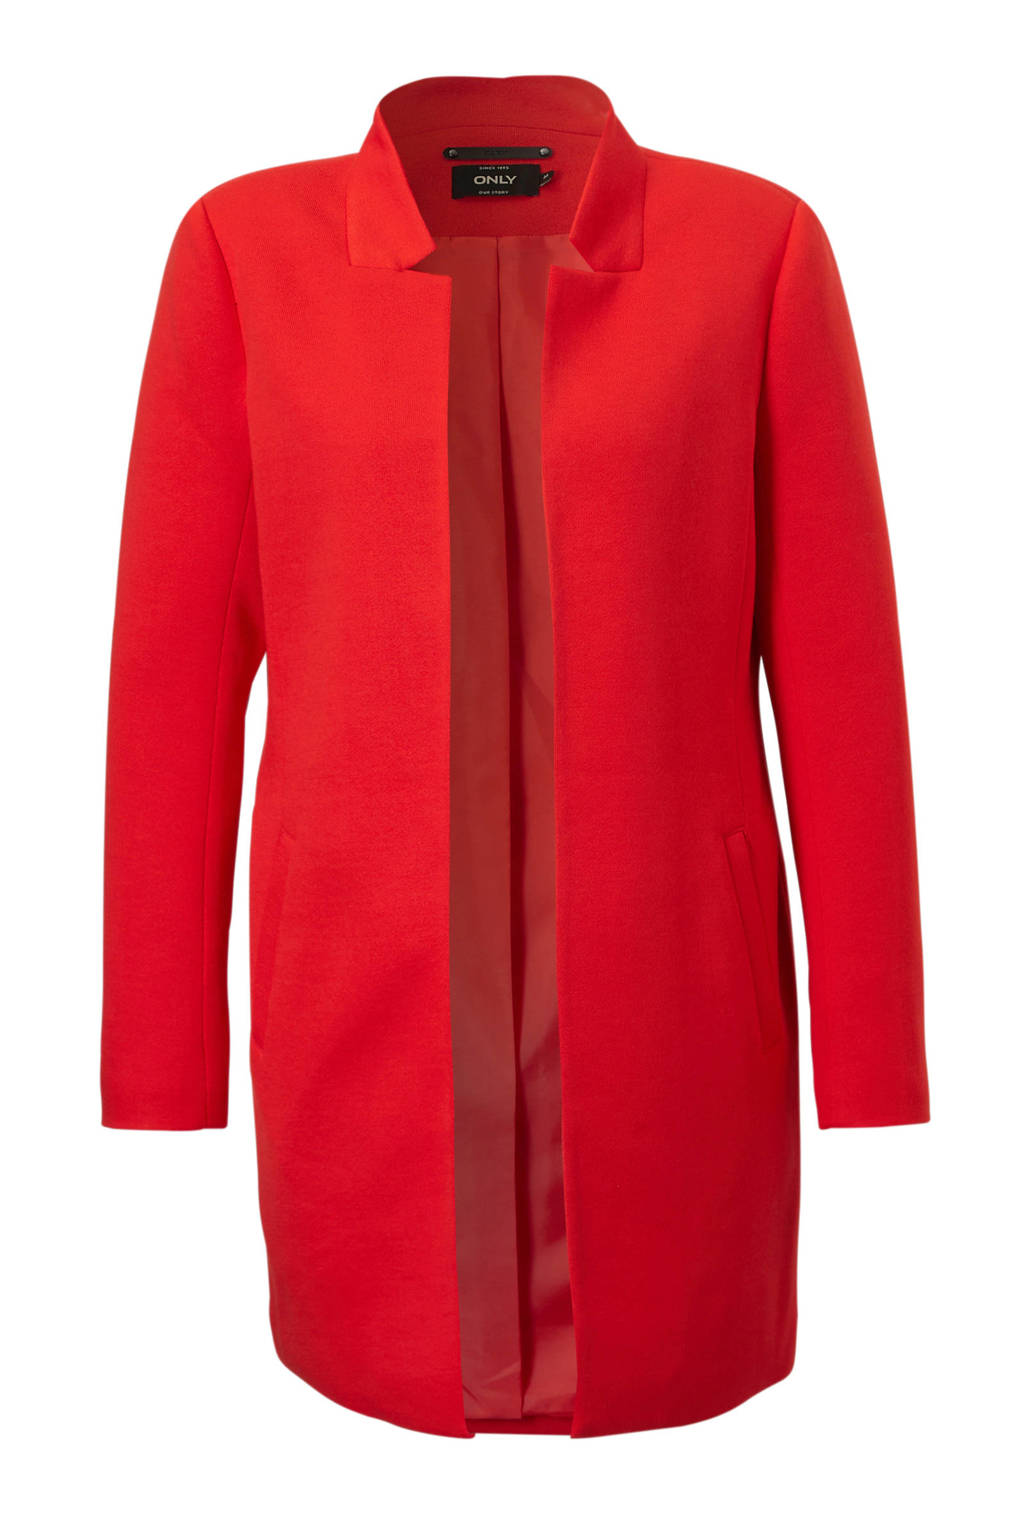 ONLY blazer lang, Rood